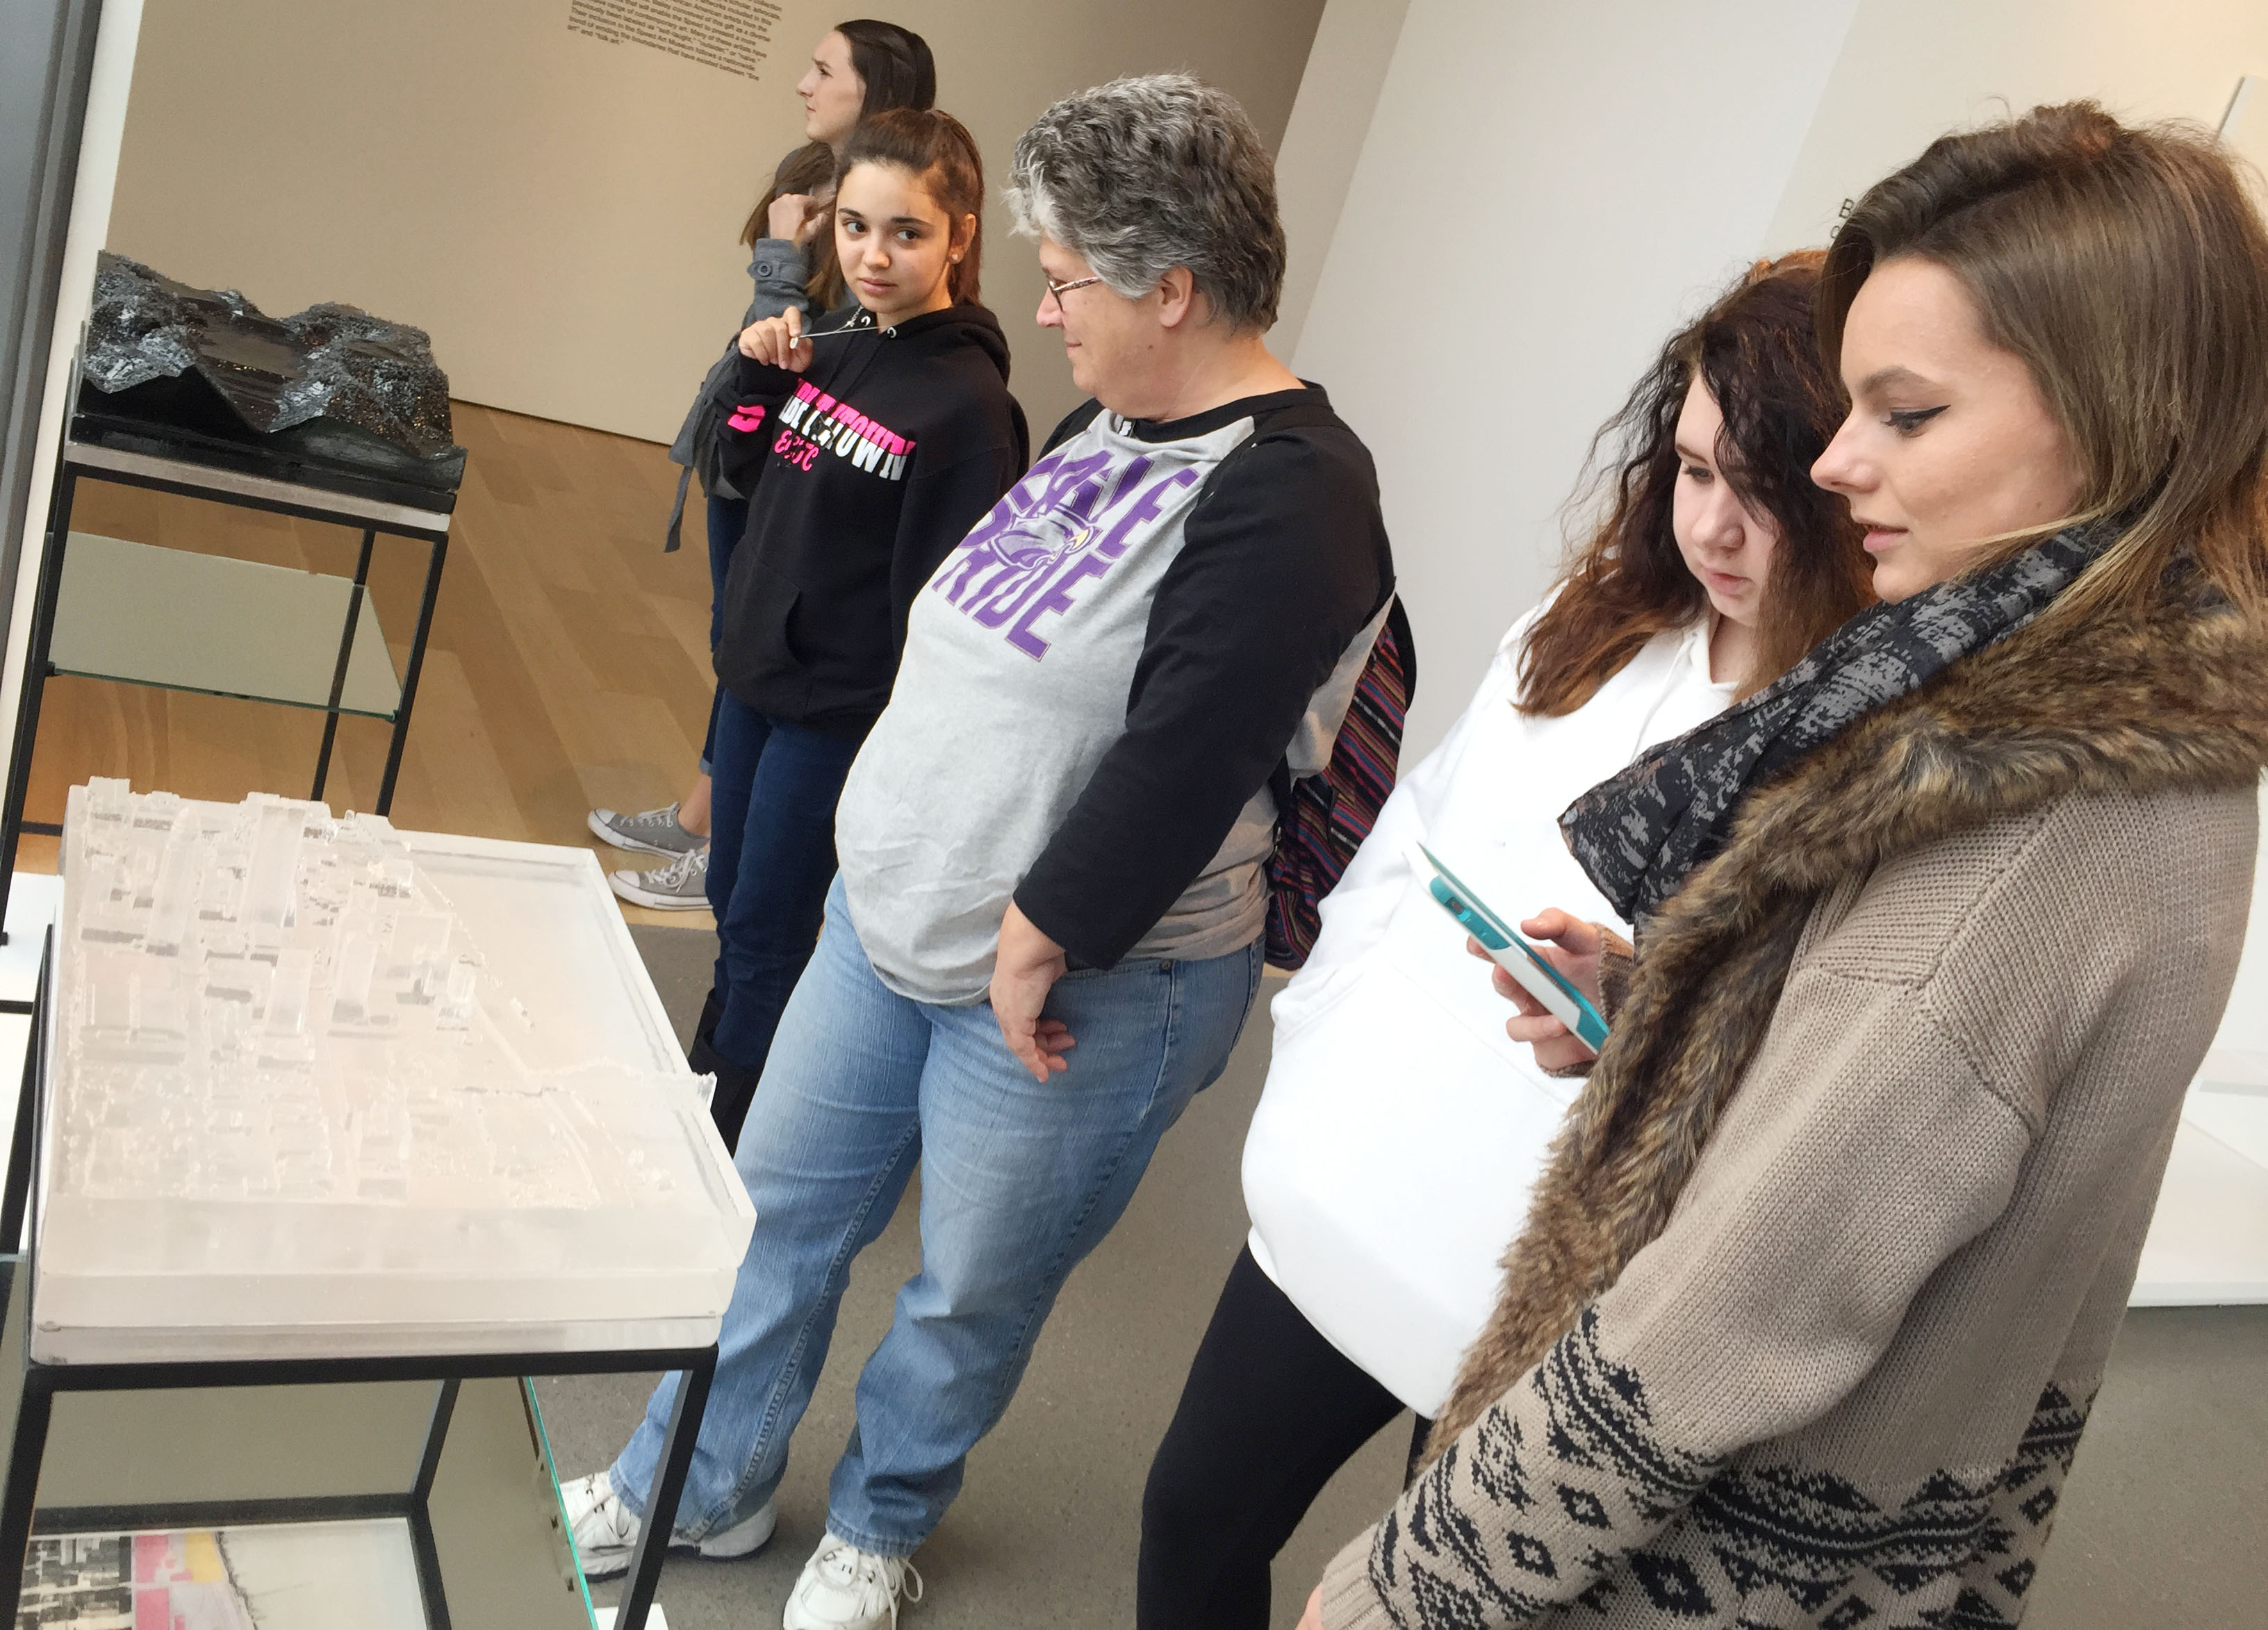 CHS sophomores, from left, Chloe Decker, Jessie Bennett and Christina Phipps look around the sneaker exhibit.